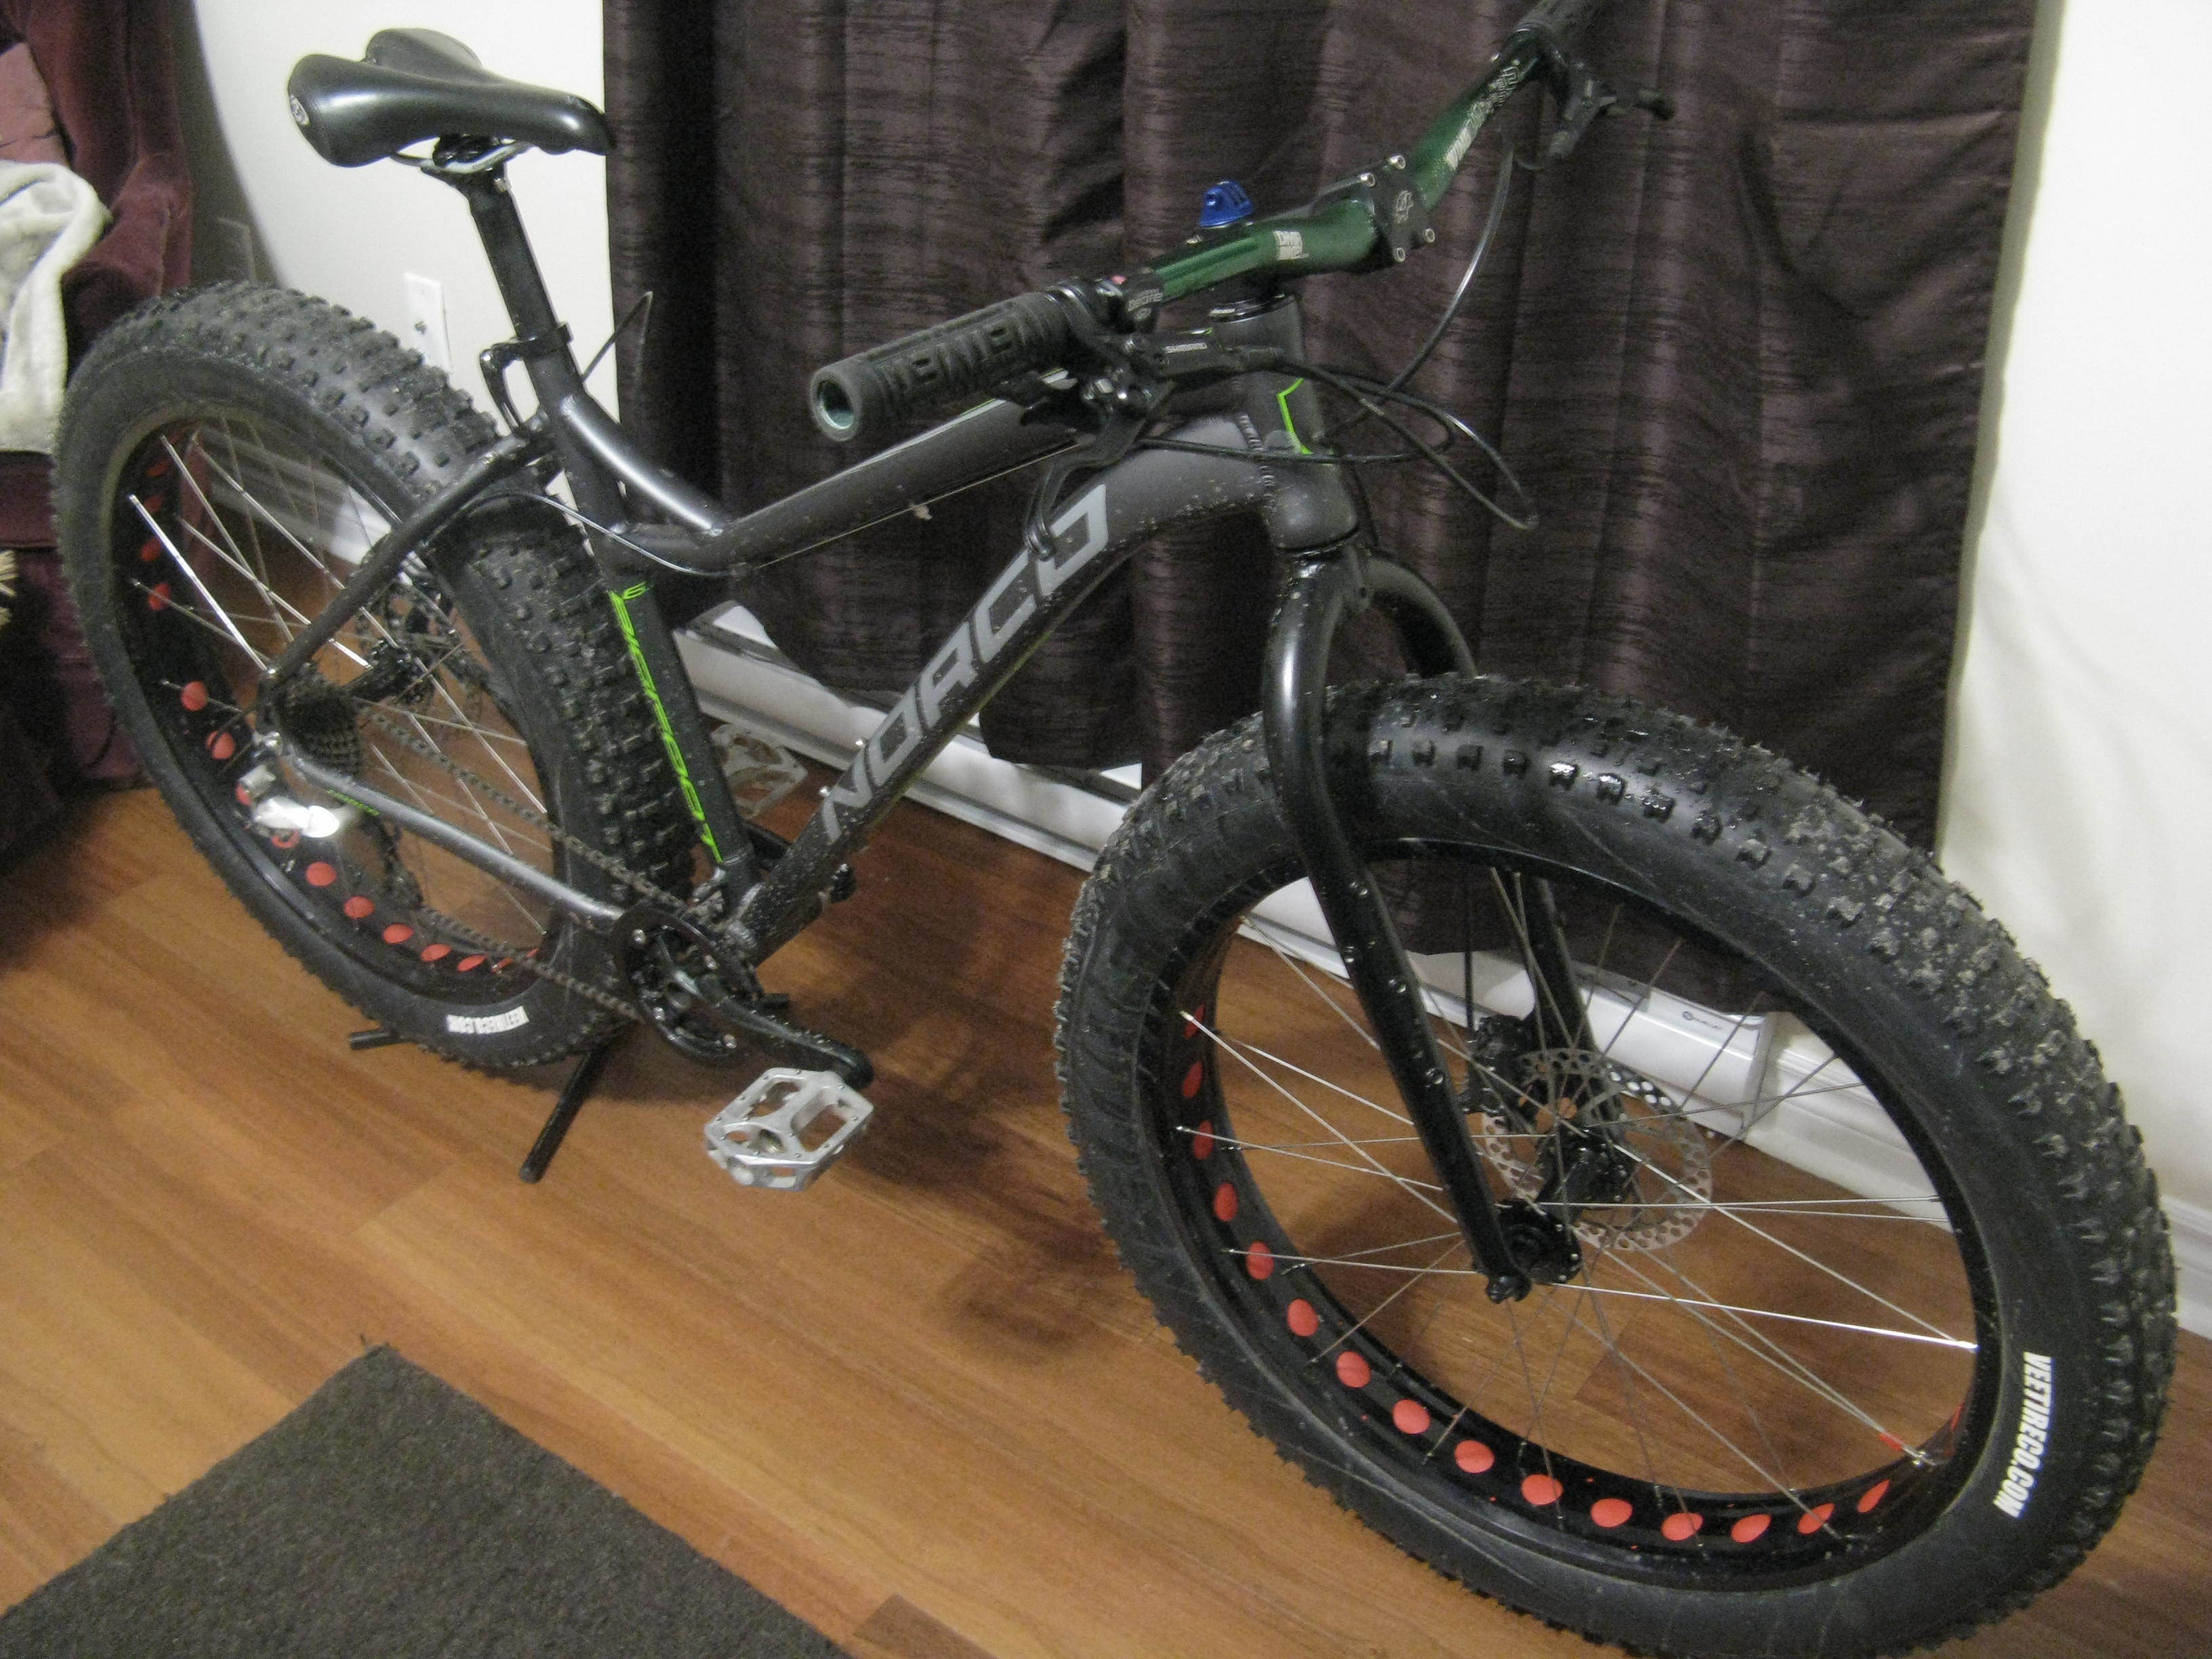 FS: 2015 Norco Bigfoot 6.2 Fat Bike - Sold - Buy and Sell ...